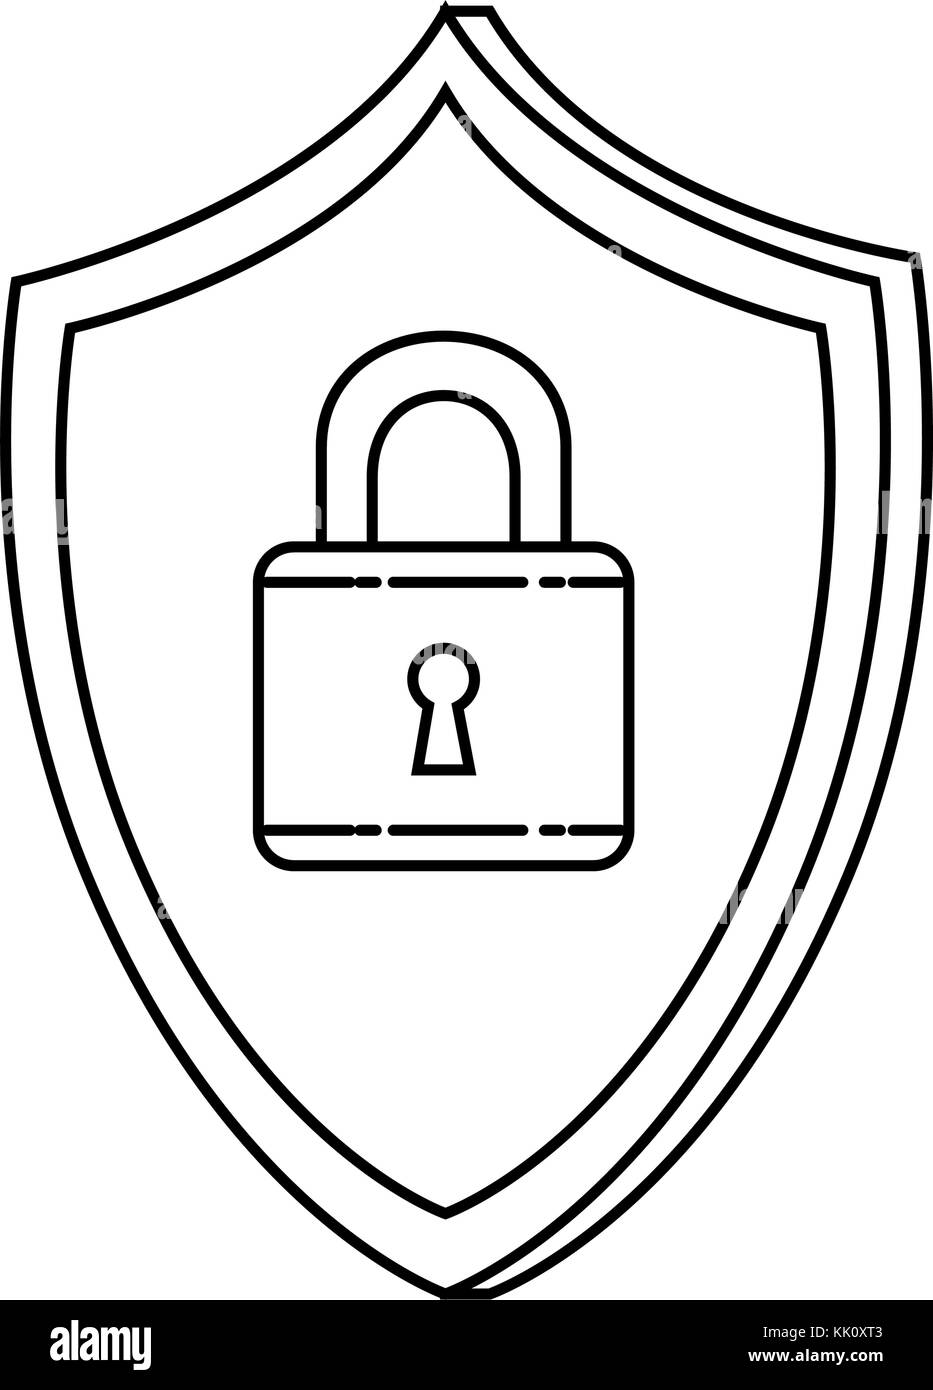 shield with padlock security - Stock Image